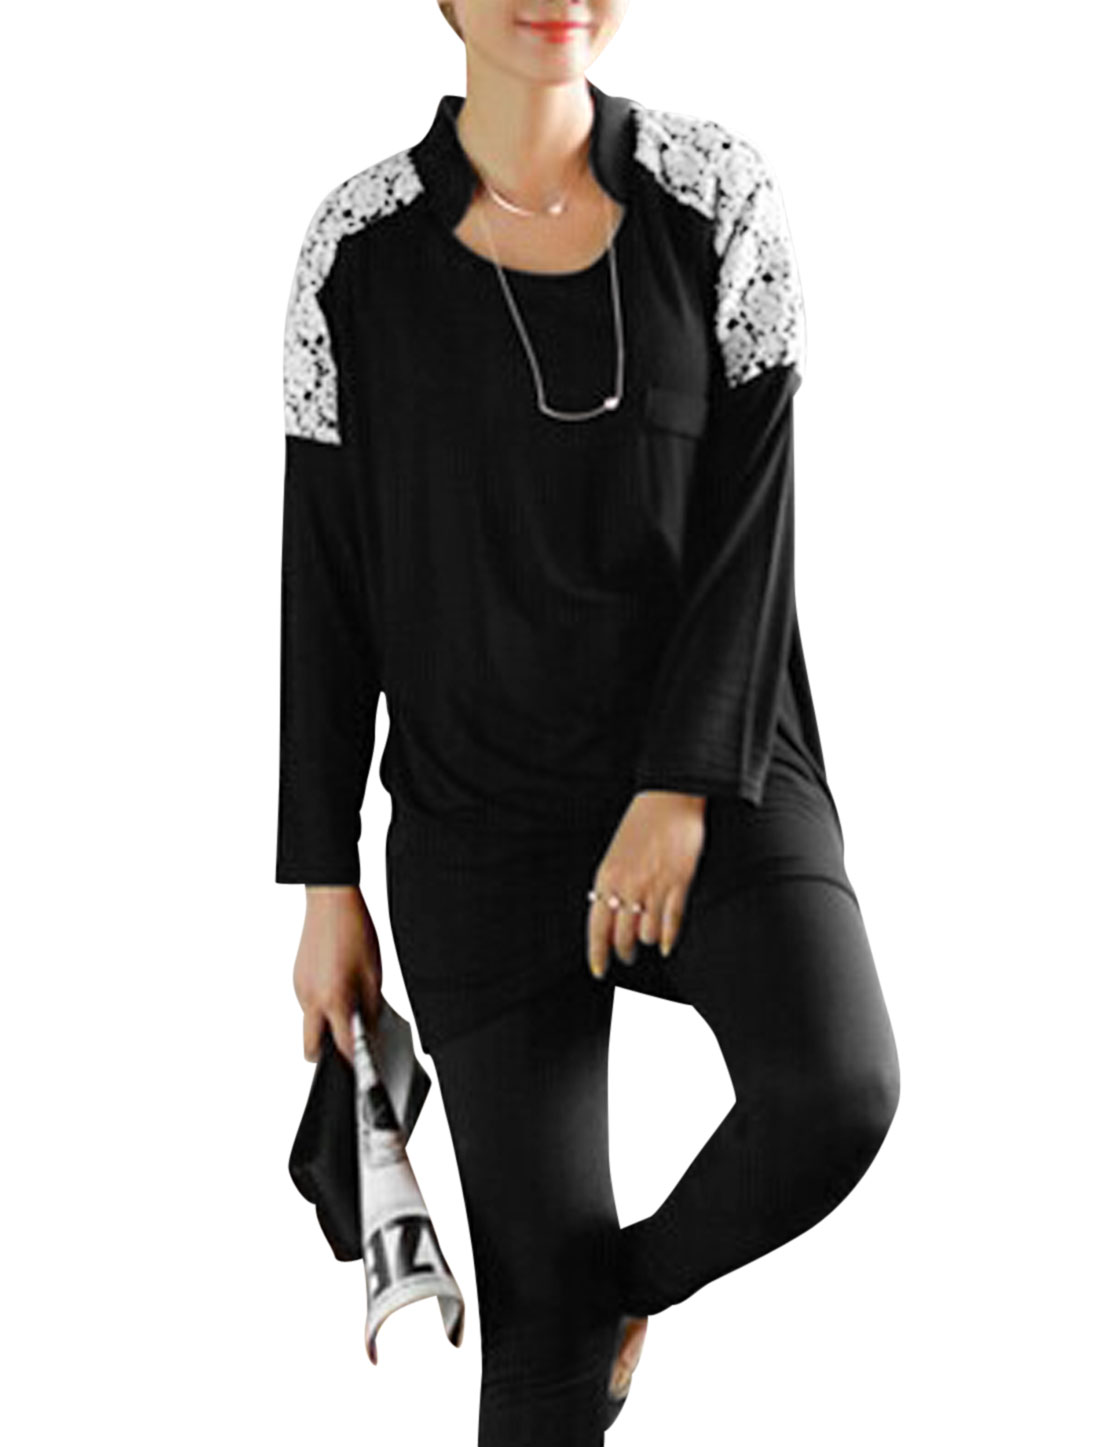 Ladies Black Pullover Lace Splice Mock Pocket Decor Batwing Sleeves Top S